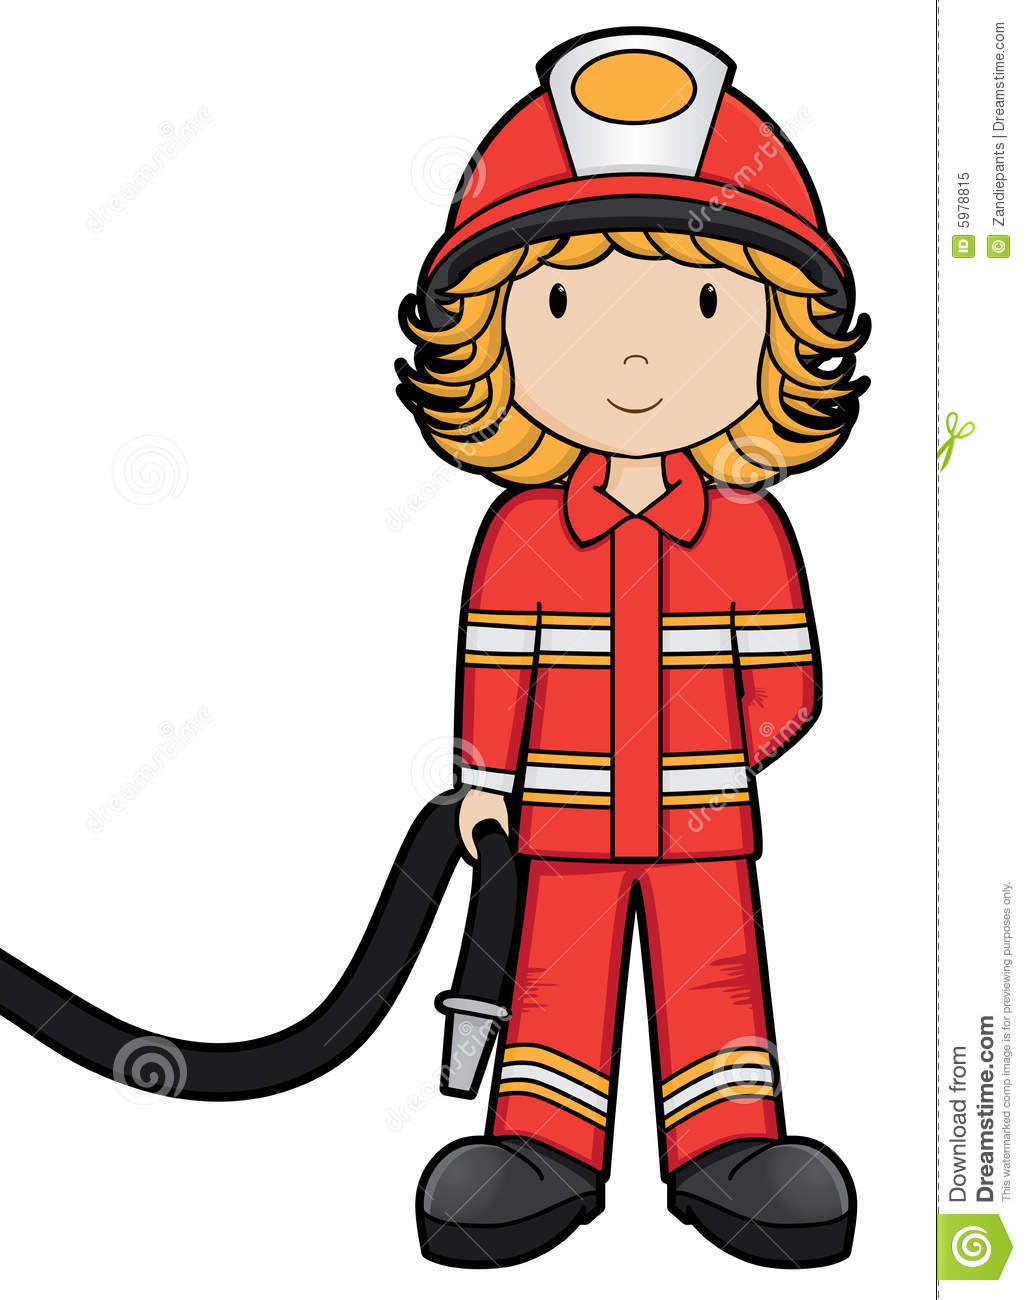 Firefighter boots free download. Fireman clipart fireman costume